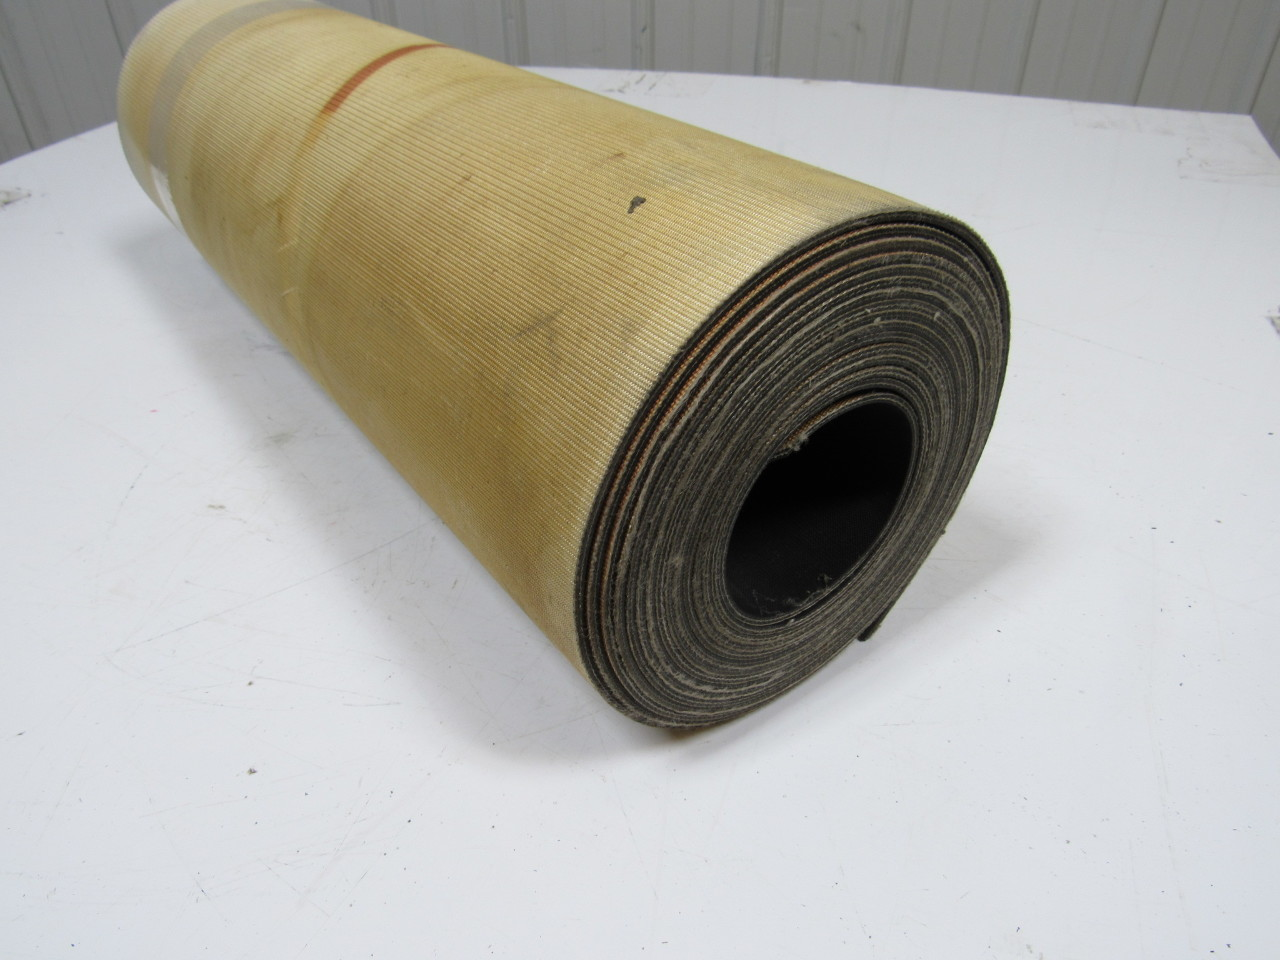 "2-Ply Black Rubber Impression Top  Conveyor Belt 23' x 24"" 0.130"" thick"